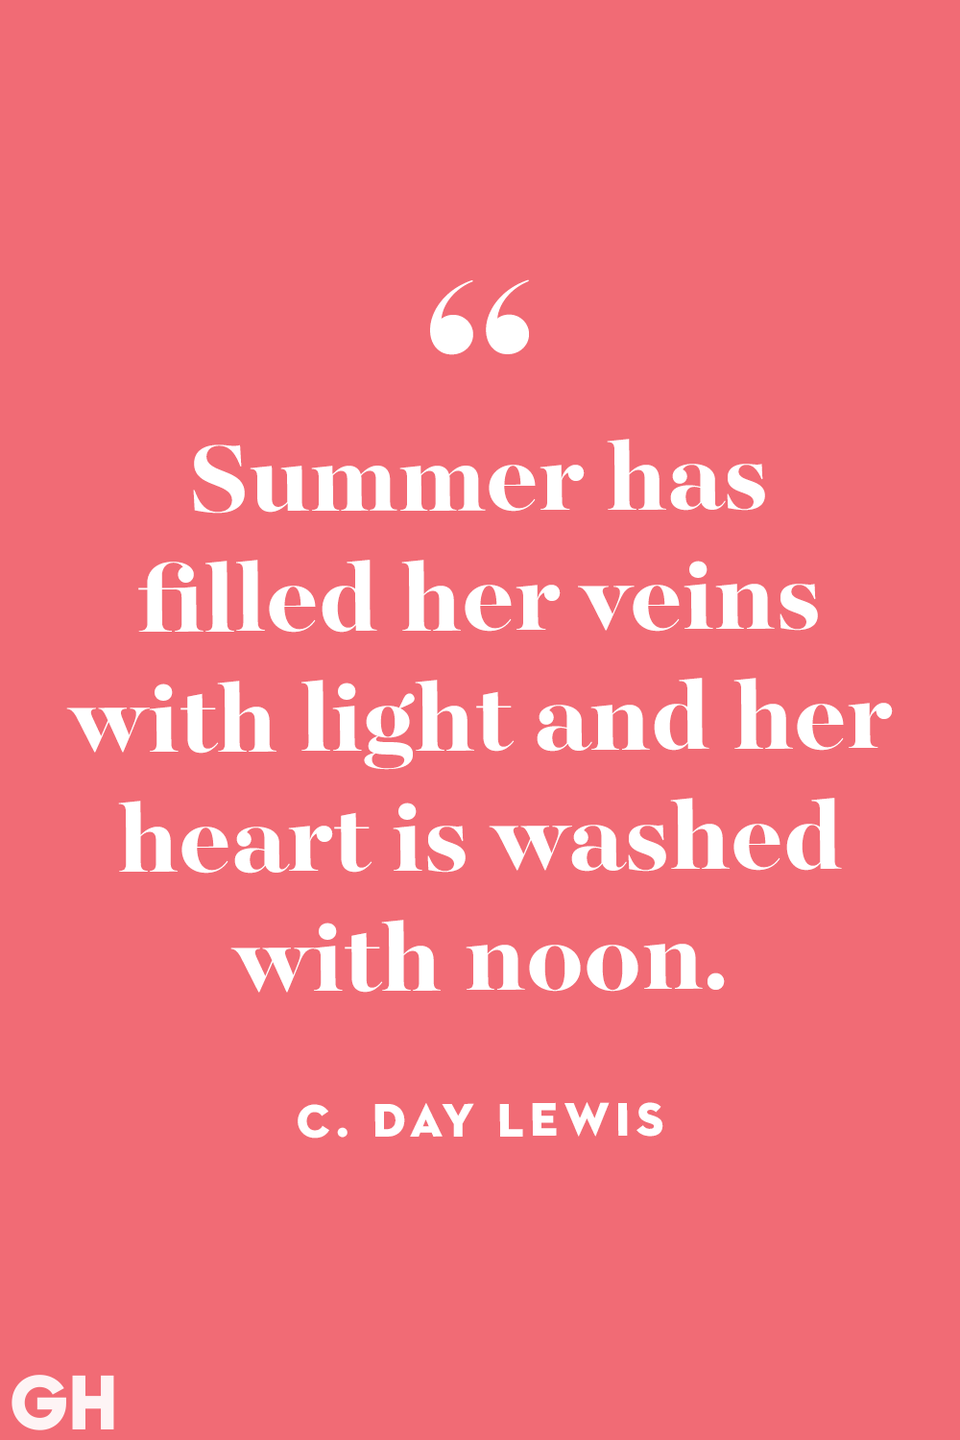 <p>Summer has filled her veins with light and her heart is washed with noon.</p>